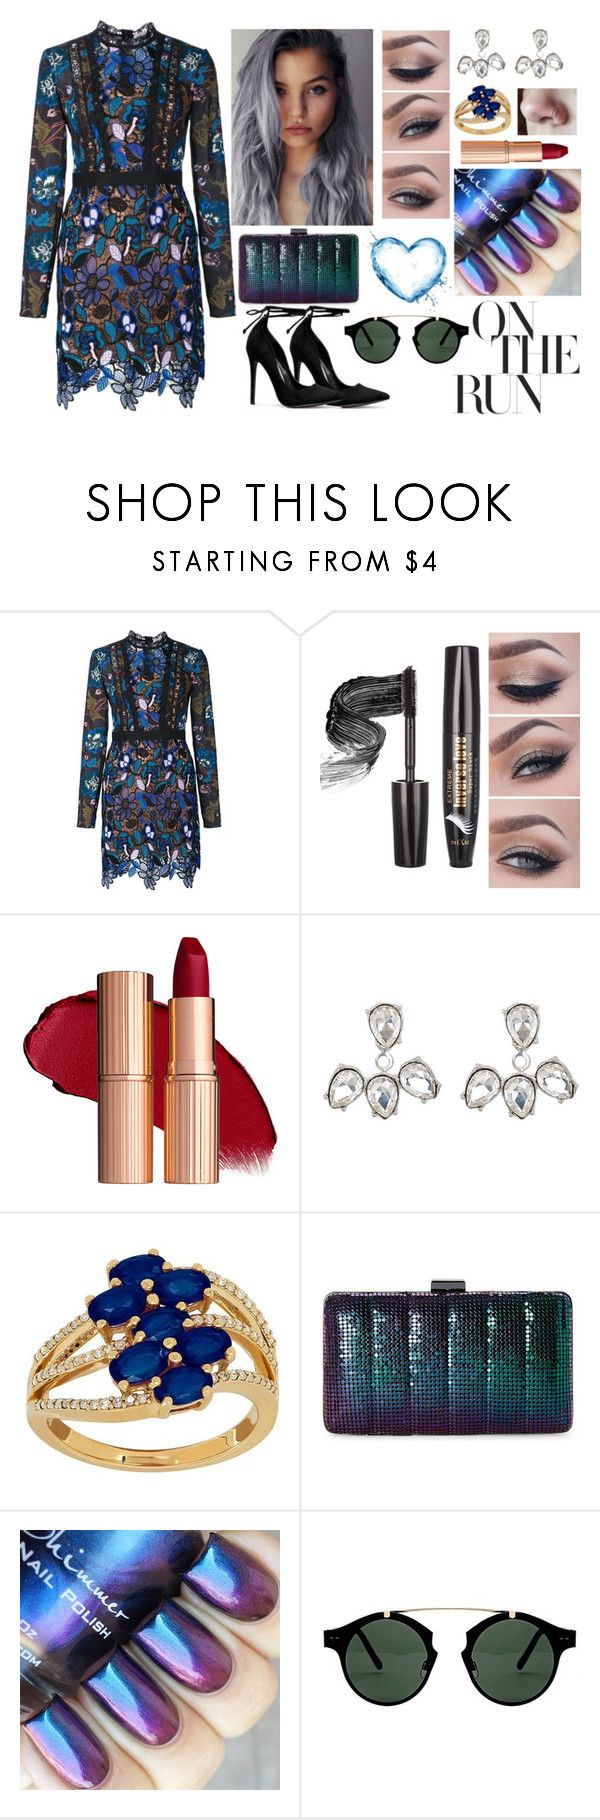 """Somebody New"" by blackveilwidow ❤ liked on Polyvore featuring self-portrait, Kenneth Jay Lane, Lord & Taylor, Jessica McClintock and Spitfire"